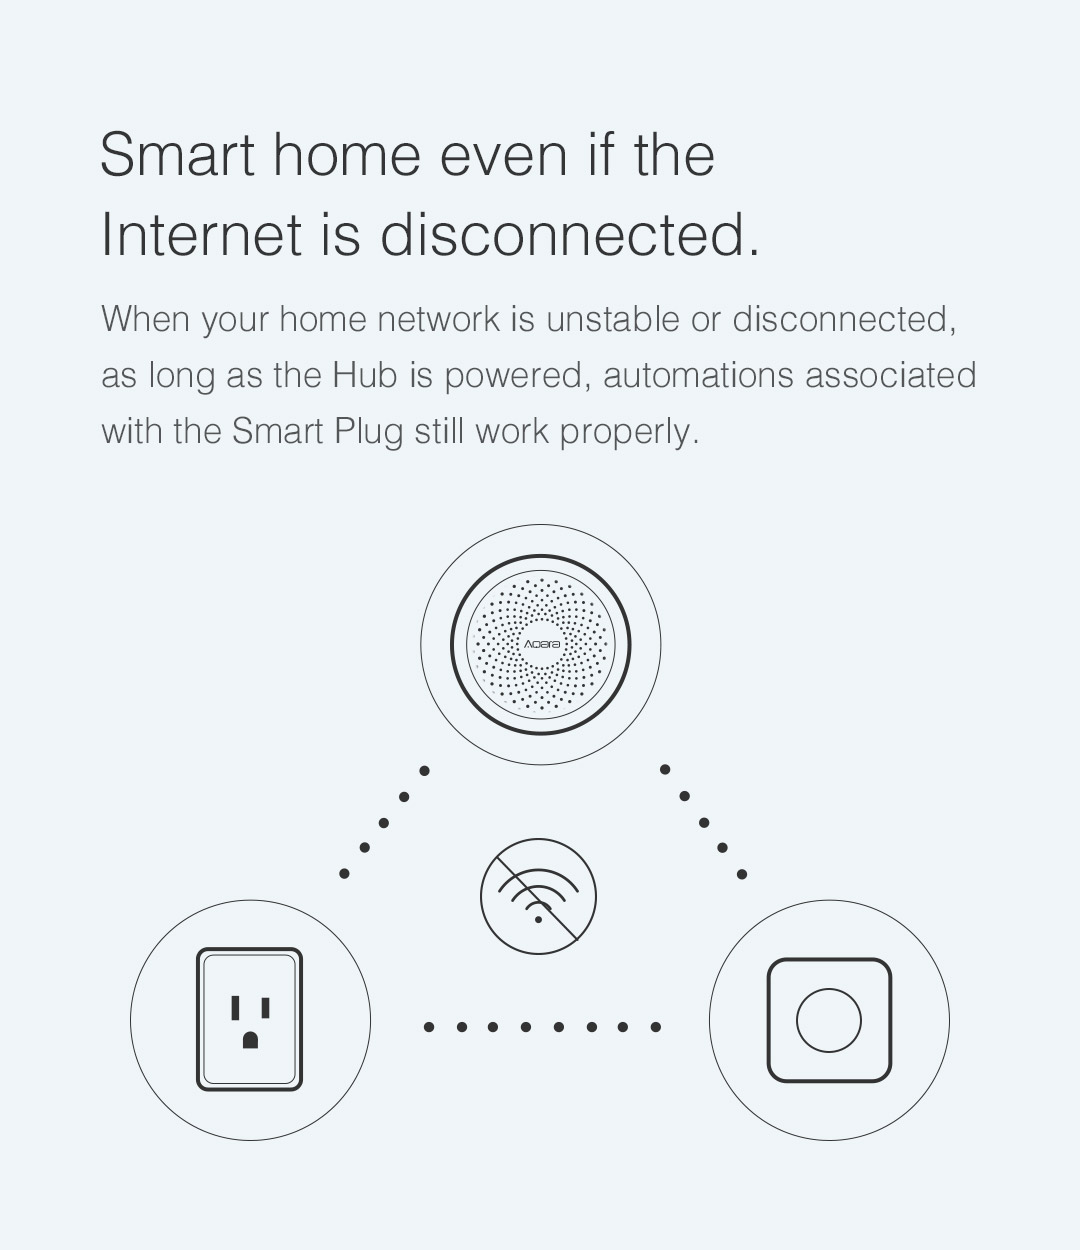 Through Aqara Hub Zigbee connection, the Aqara Smart Plug US can still be controlled without WiFi